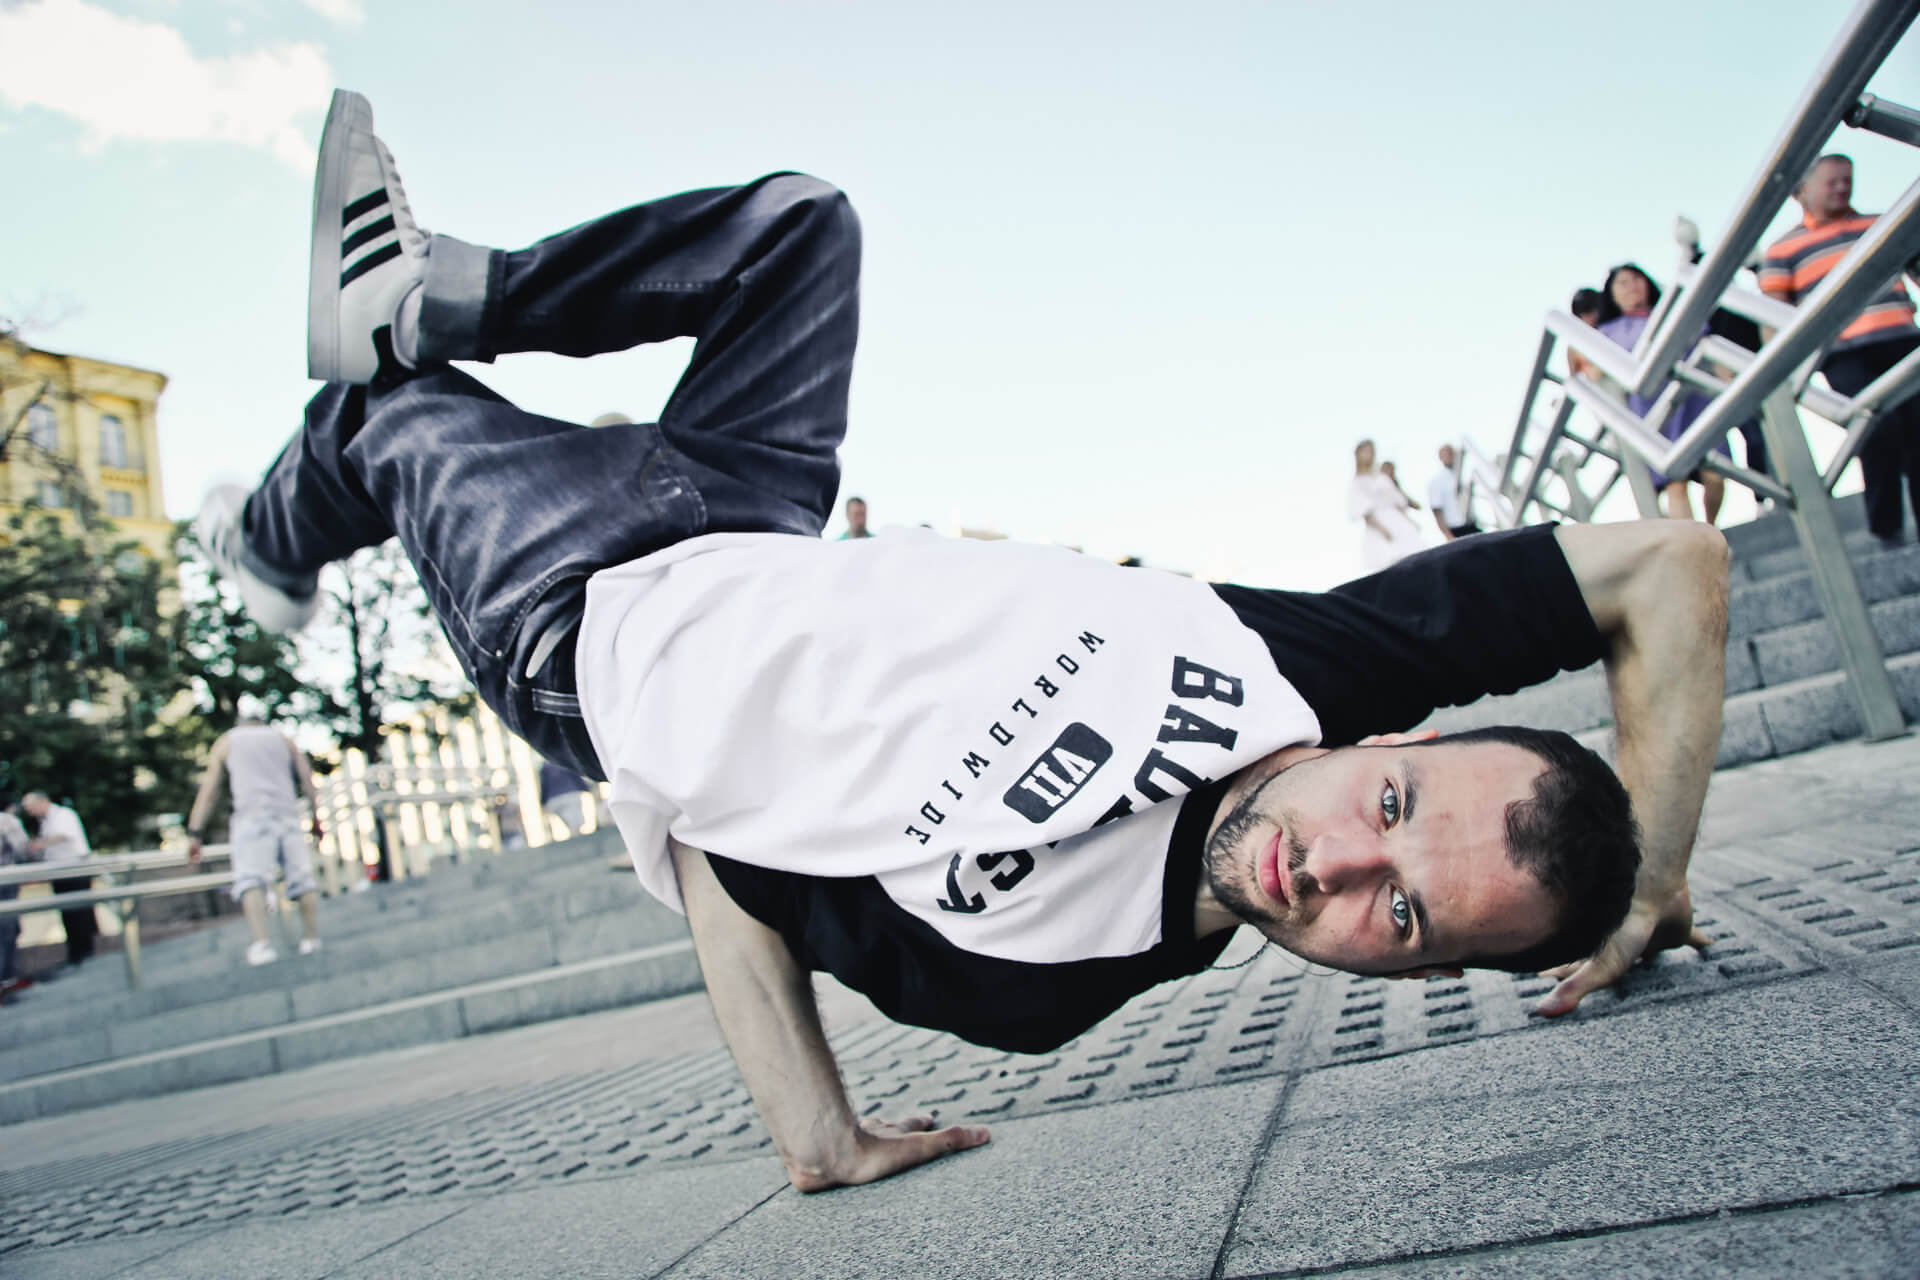 B-boy Maks power move, footwork, trix макс